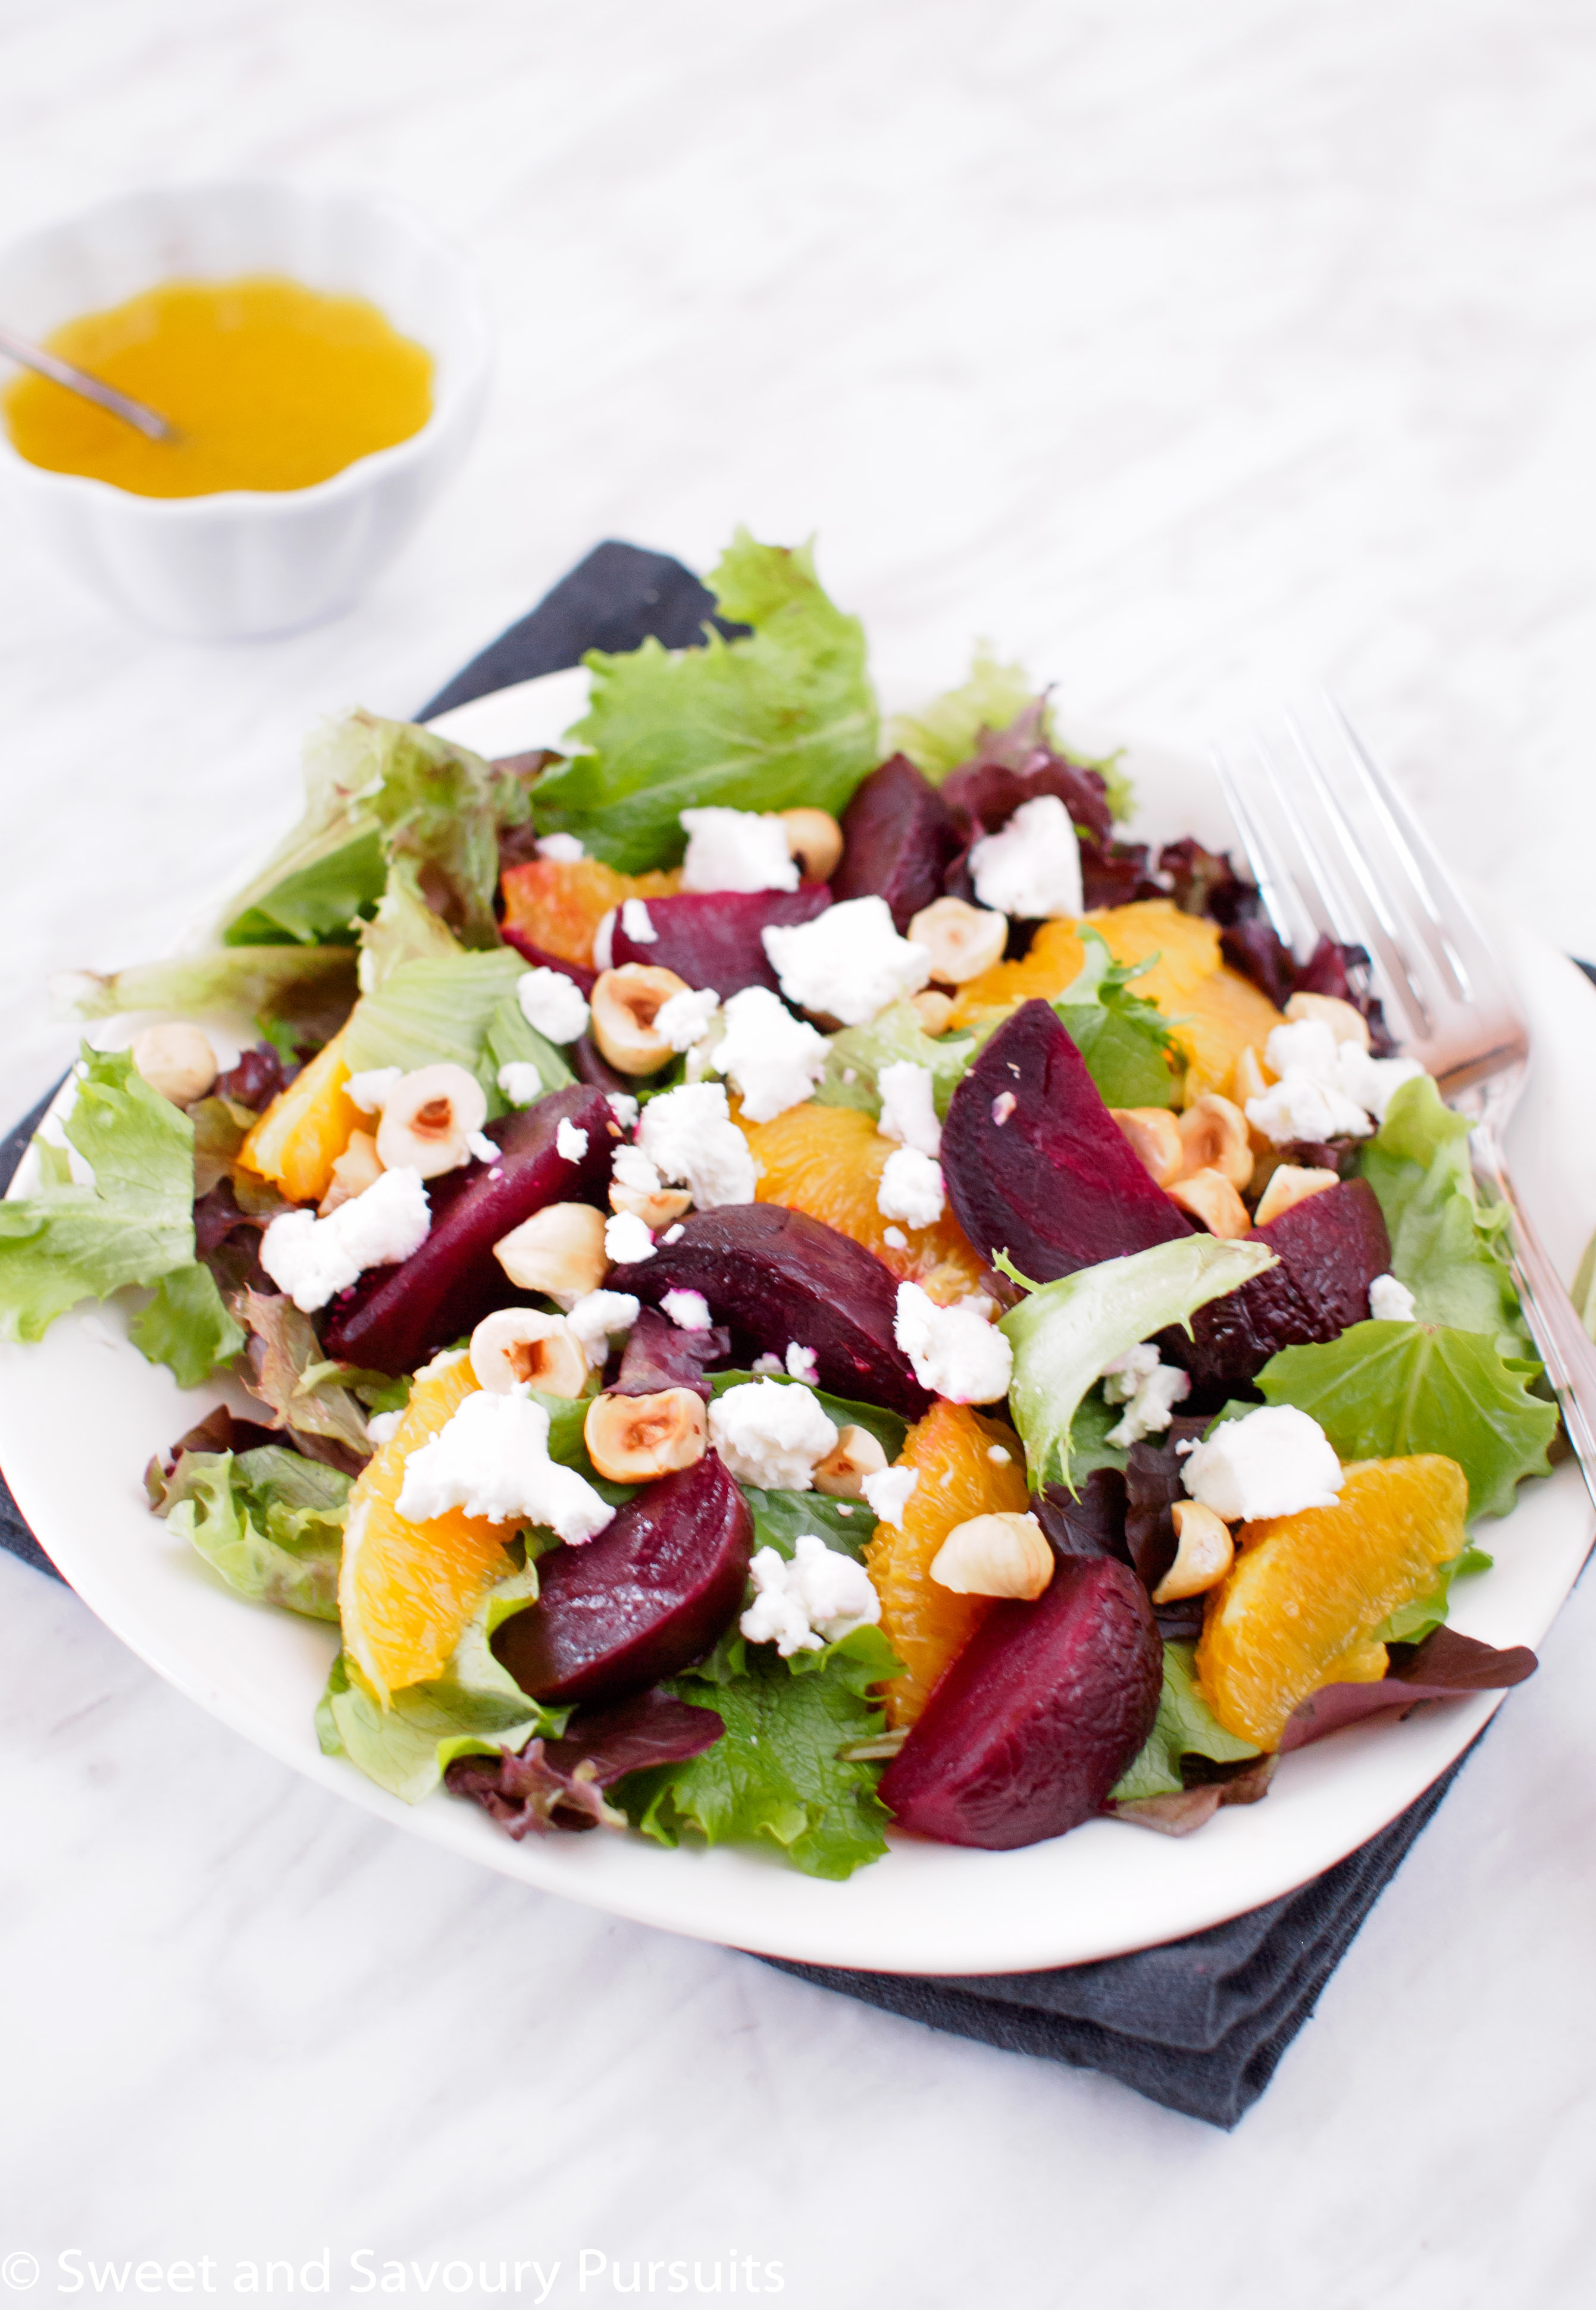 A delicious Roasted Beet and Orange Salad with Citrus Vinaigrette, toasted hazelnuts and creamy goat cheese.